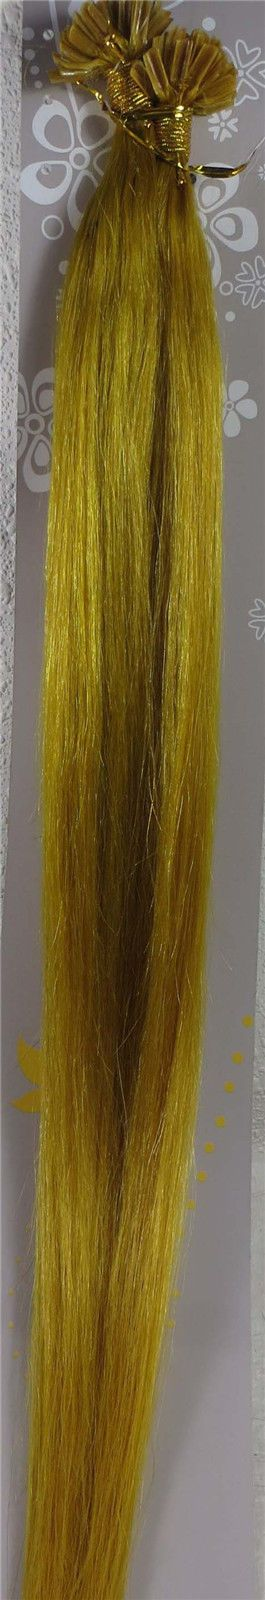 """100S 18""""-26"""" Nail Tip Pre Bonded Fusion Remy Human Hair Extension Yellow, 1G/S"""